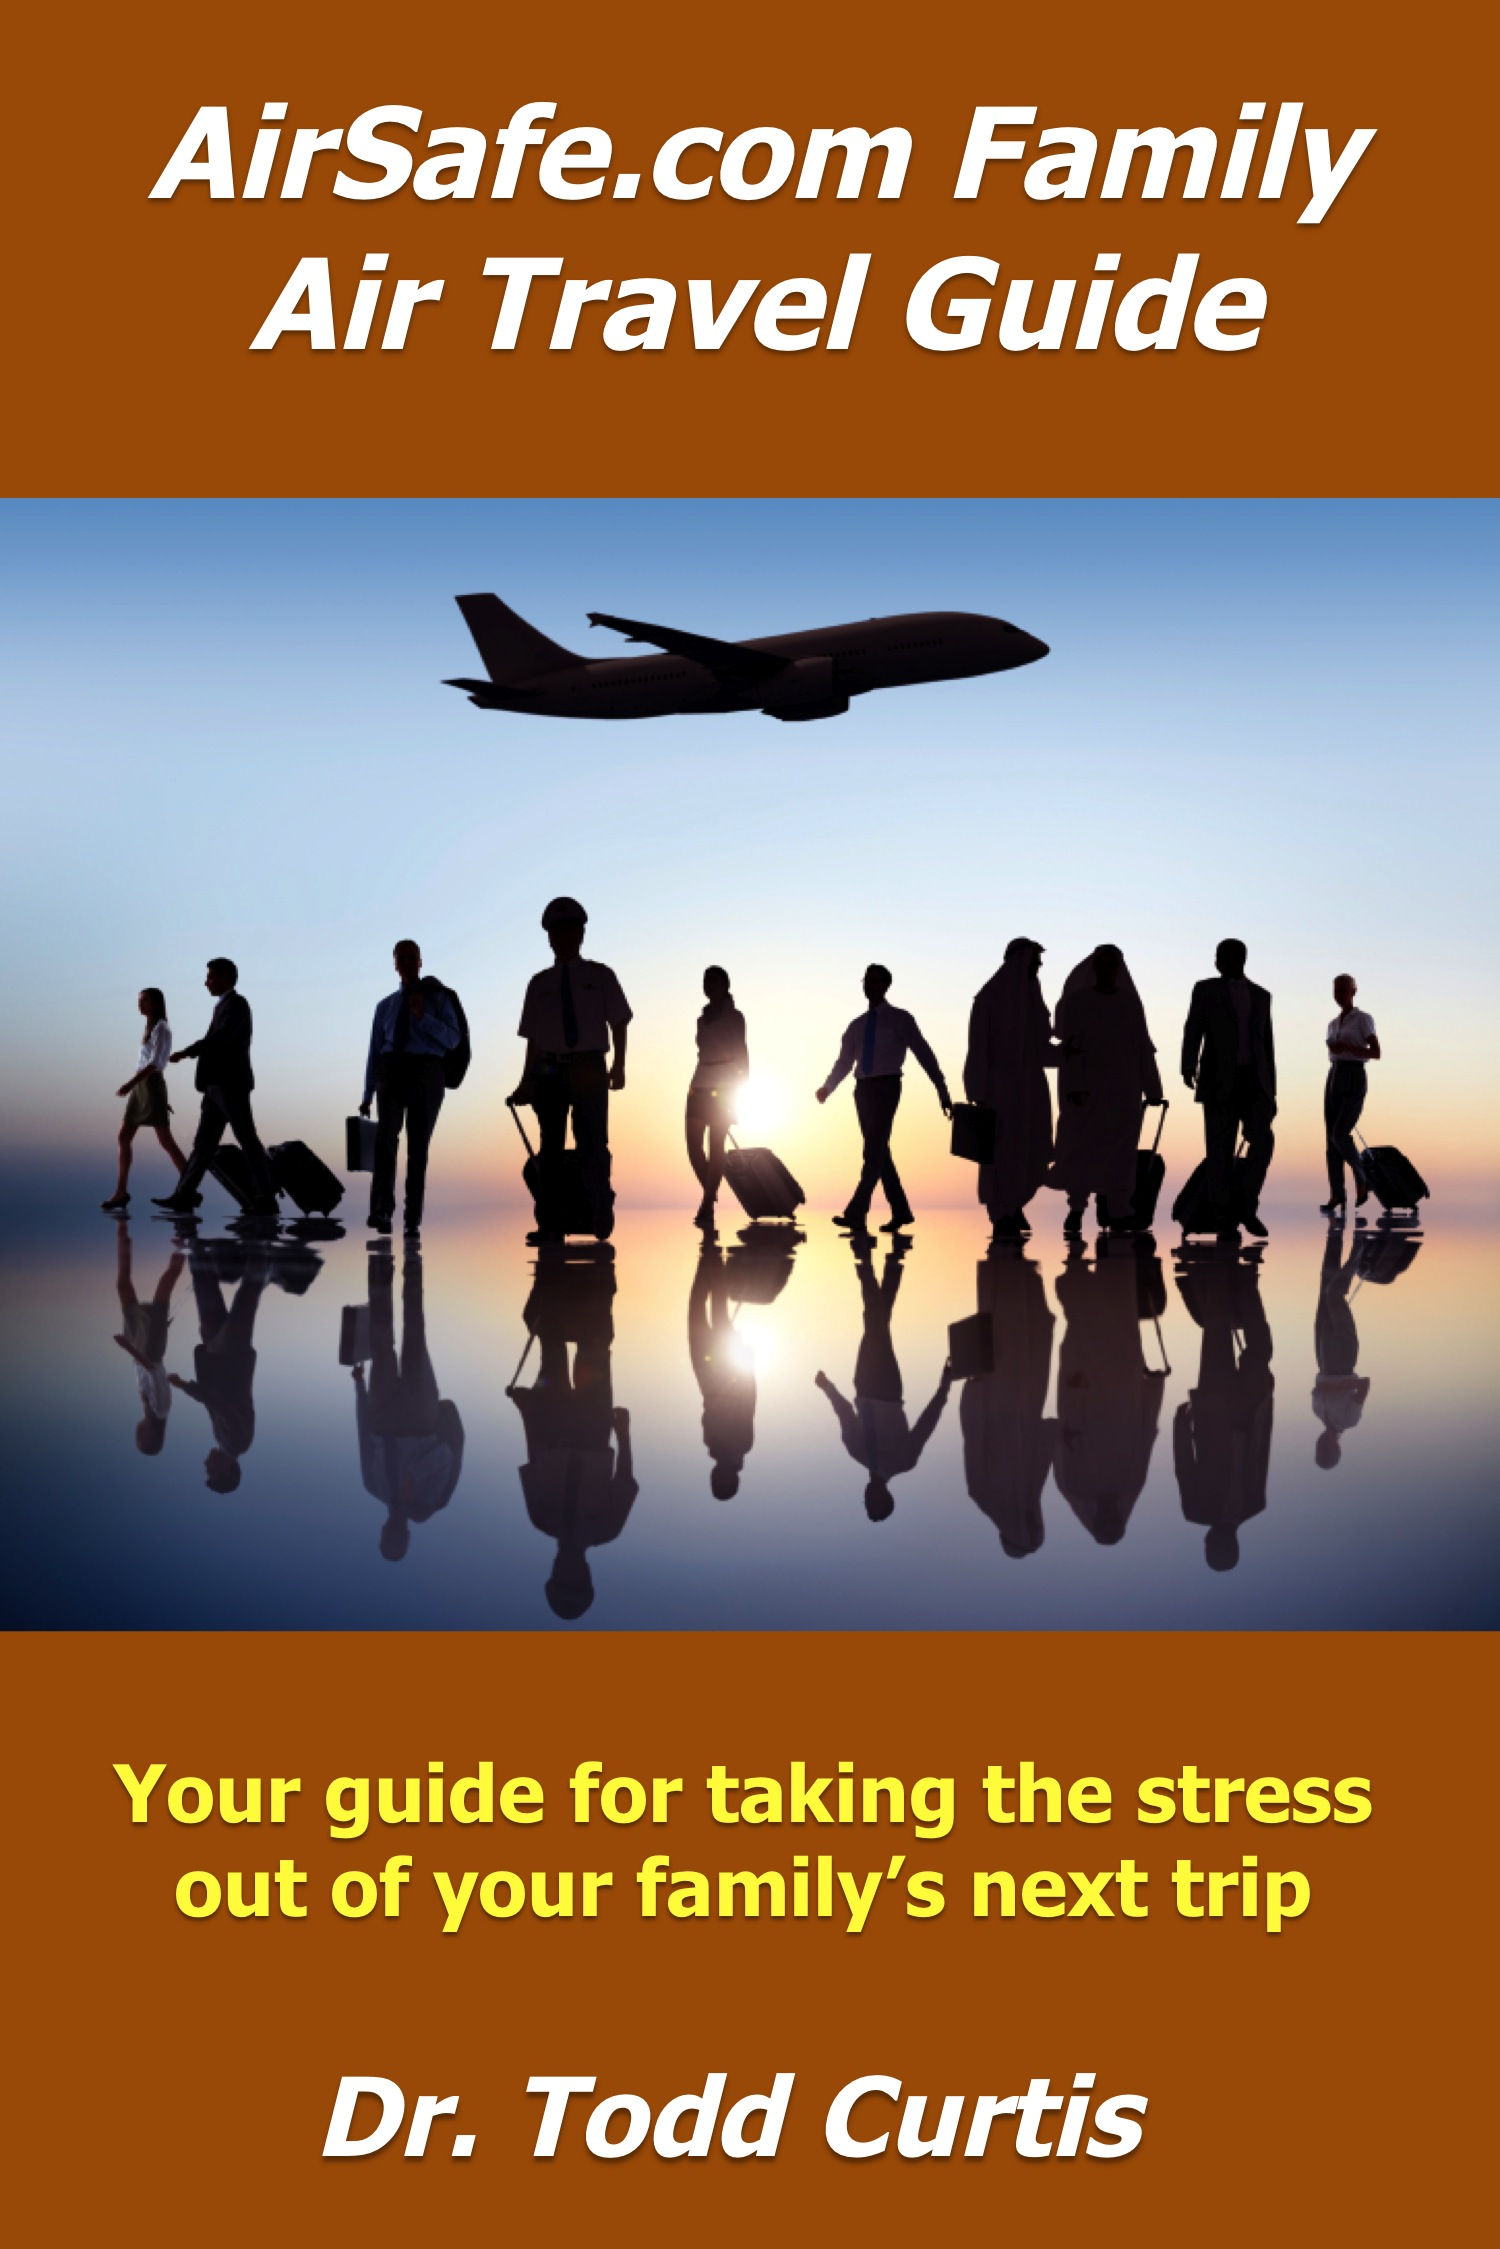 AirSafe.com Family Air Travel Guide